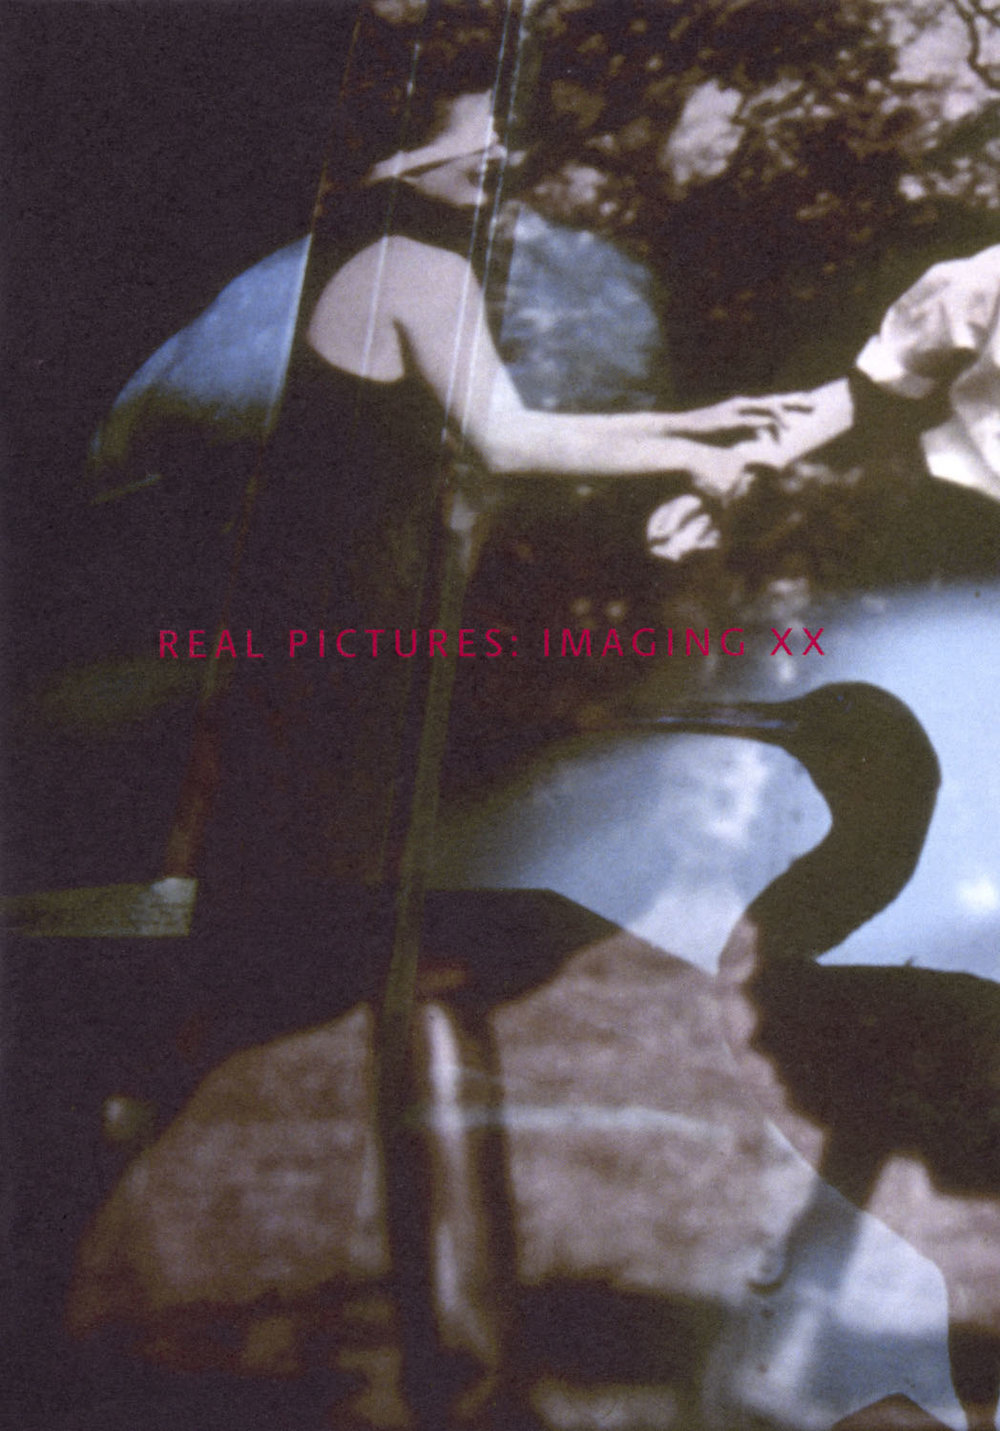 Cover of  Real Pictures: Imaging XX , published by PhotoForum as PhotoForum #88, 2017.